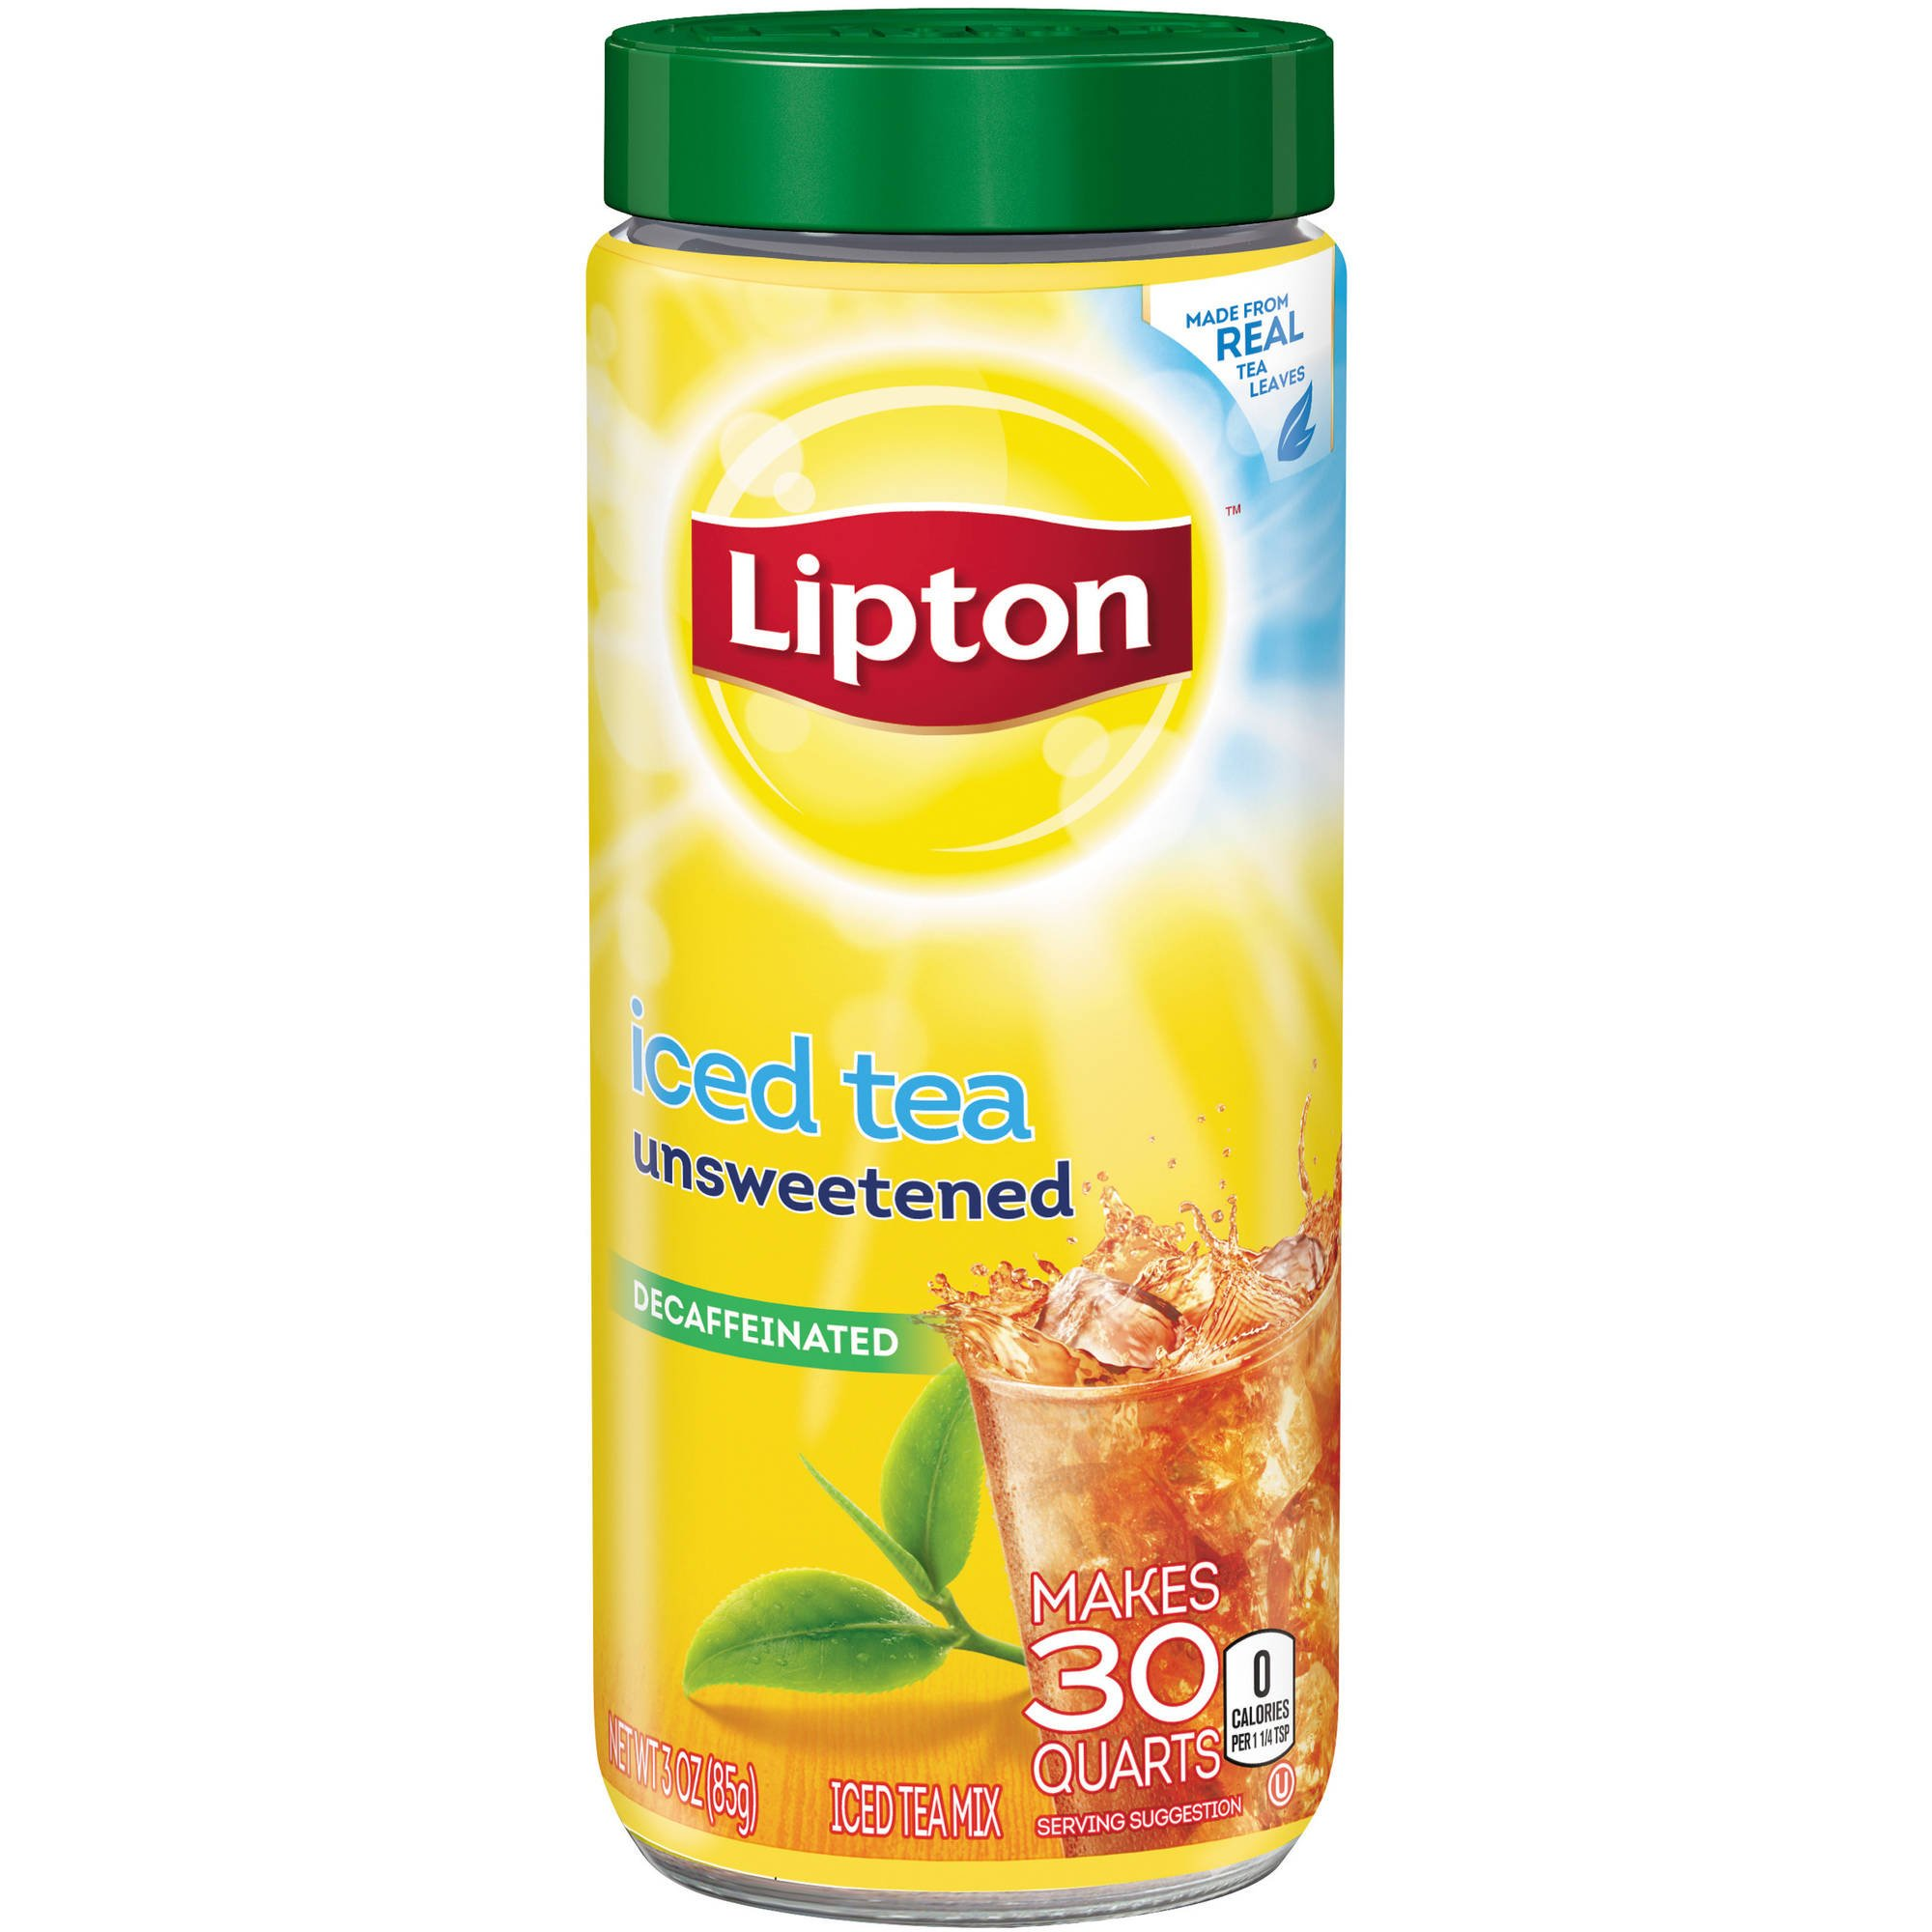 Lipton Decaffeinated and Unsweetened Iced Tea Mix, 3 Ounce (Pack of 3) by Lipton [Foods] by Lipton (Image #1)